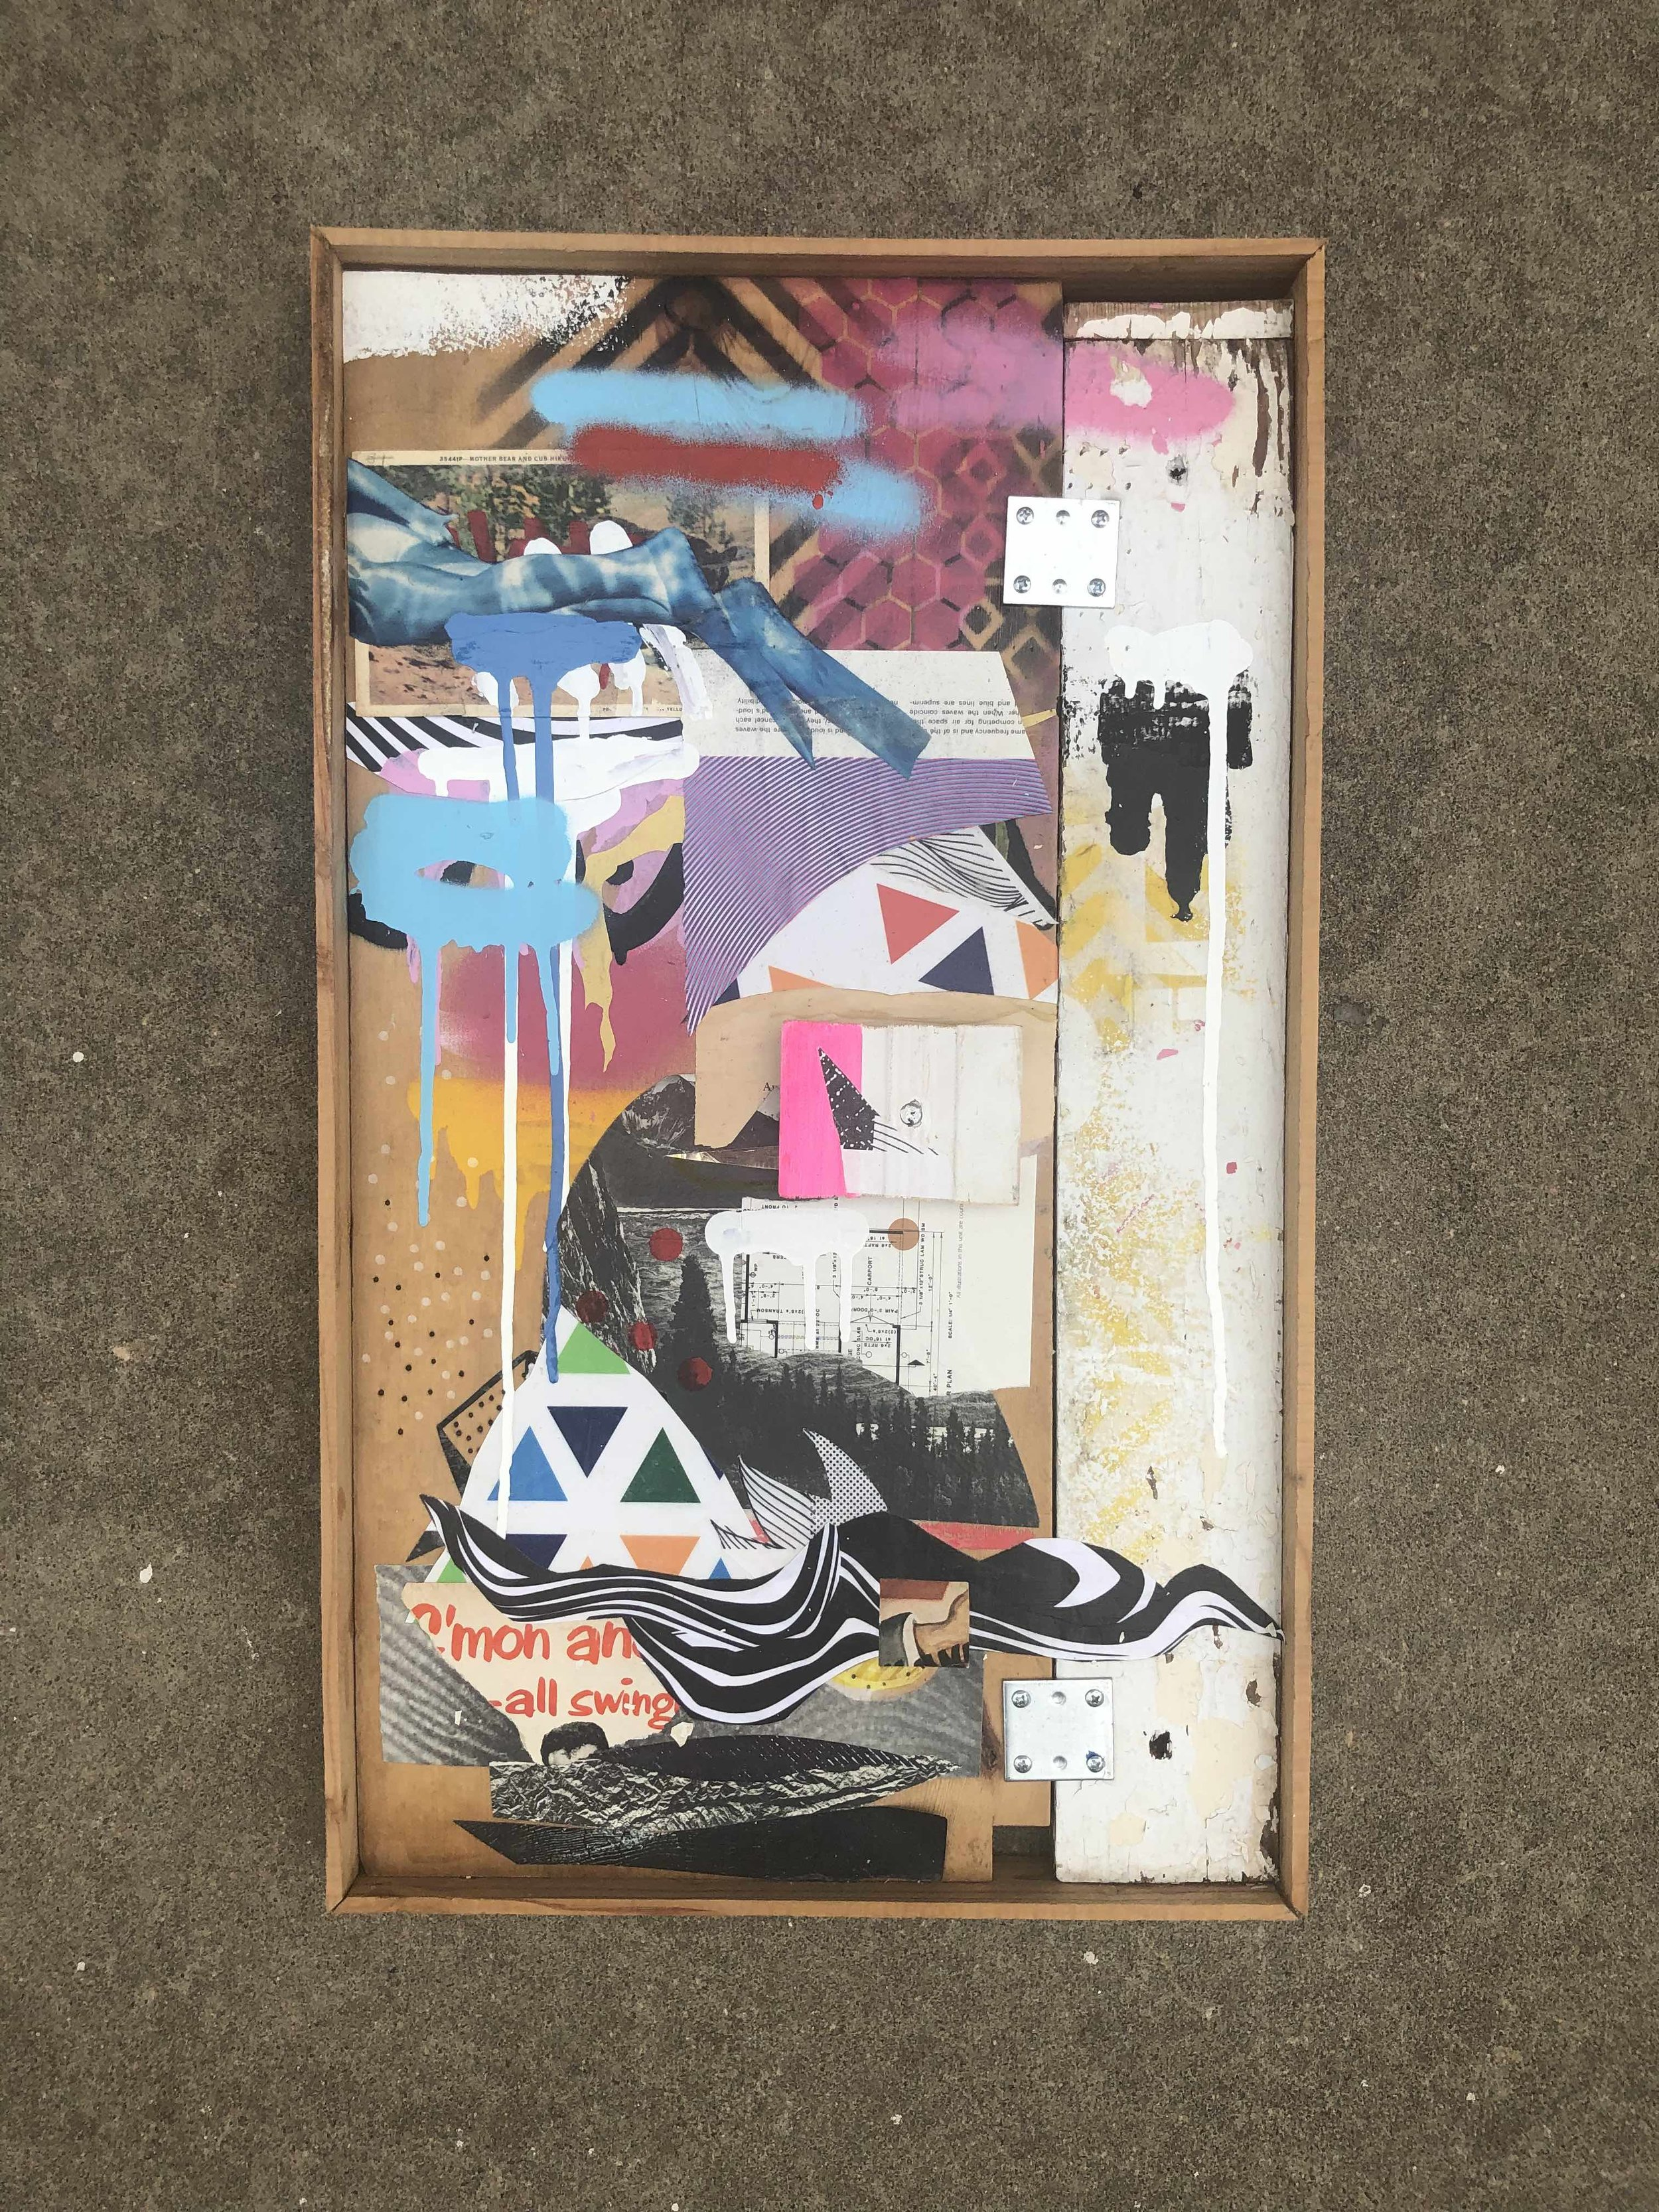 """FOUNDSOUND 208"" 2016 / 2019 - 15"" X 26"" FOUND CLIPPINGS, PREPARED CLIPPINGS, MIXED MEDIA ON FOUND PANEL - $170 (REG. $250)"